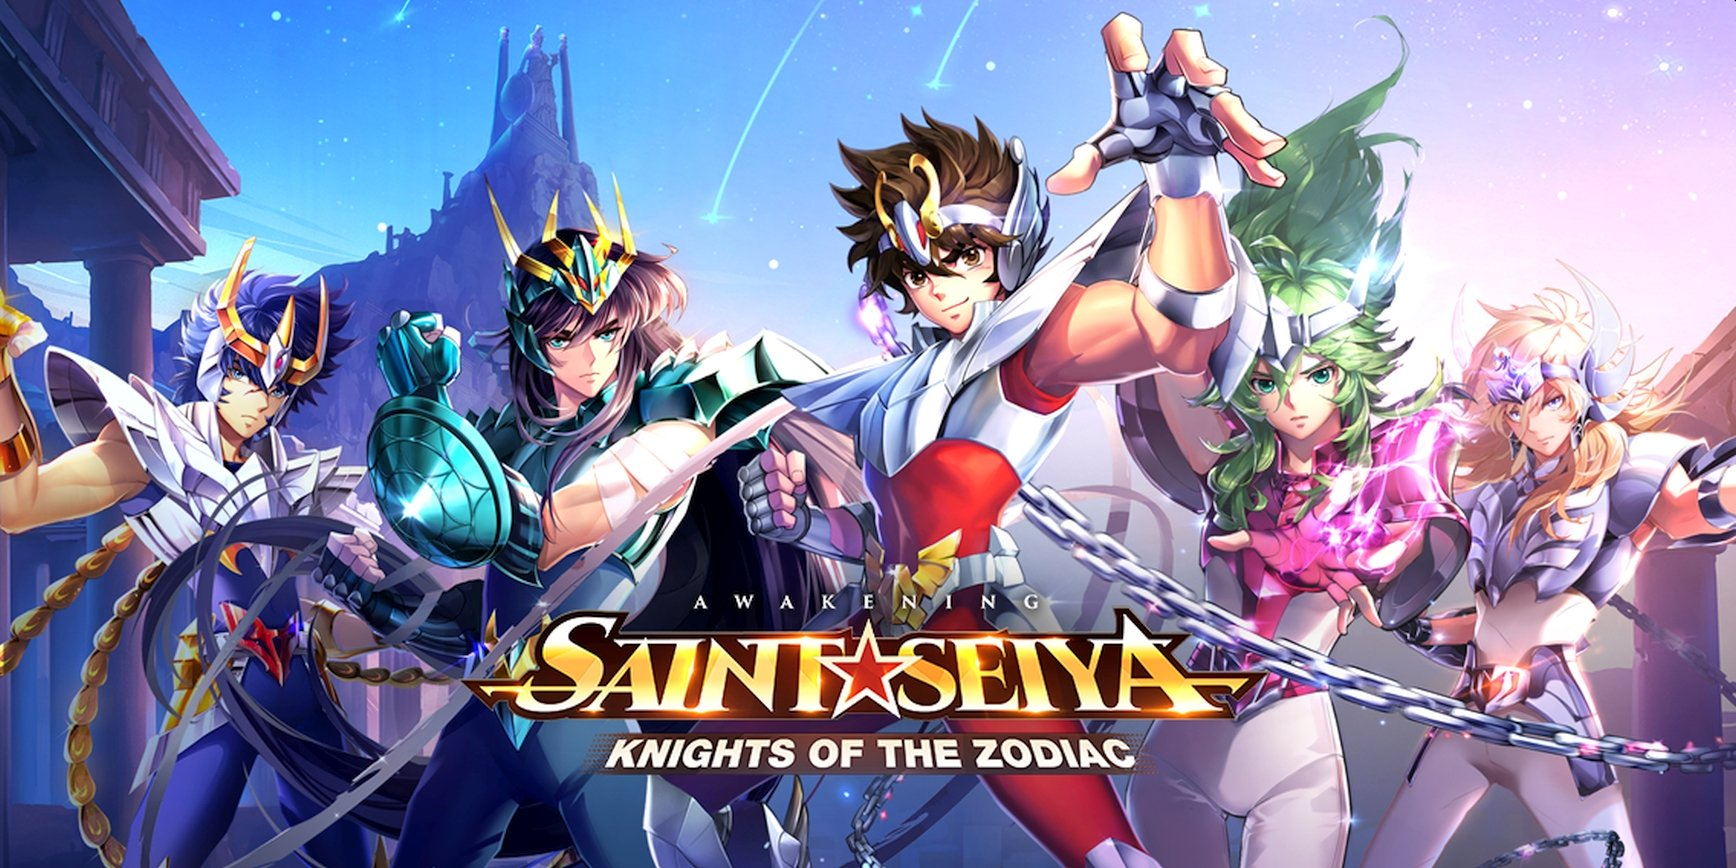 Saint Seiya Awakening: Knights of the Zodiac Celebrates First Anniversary With Contests And Gift